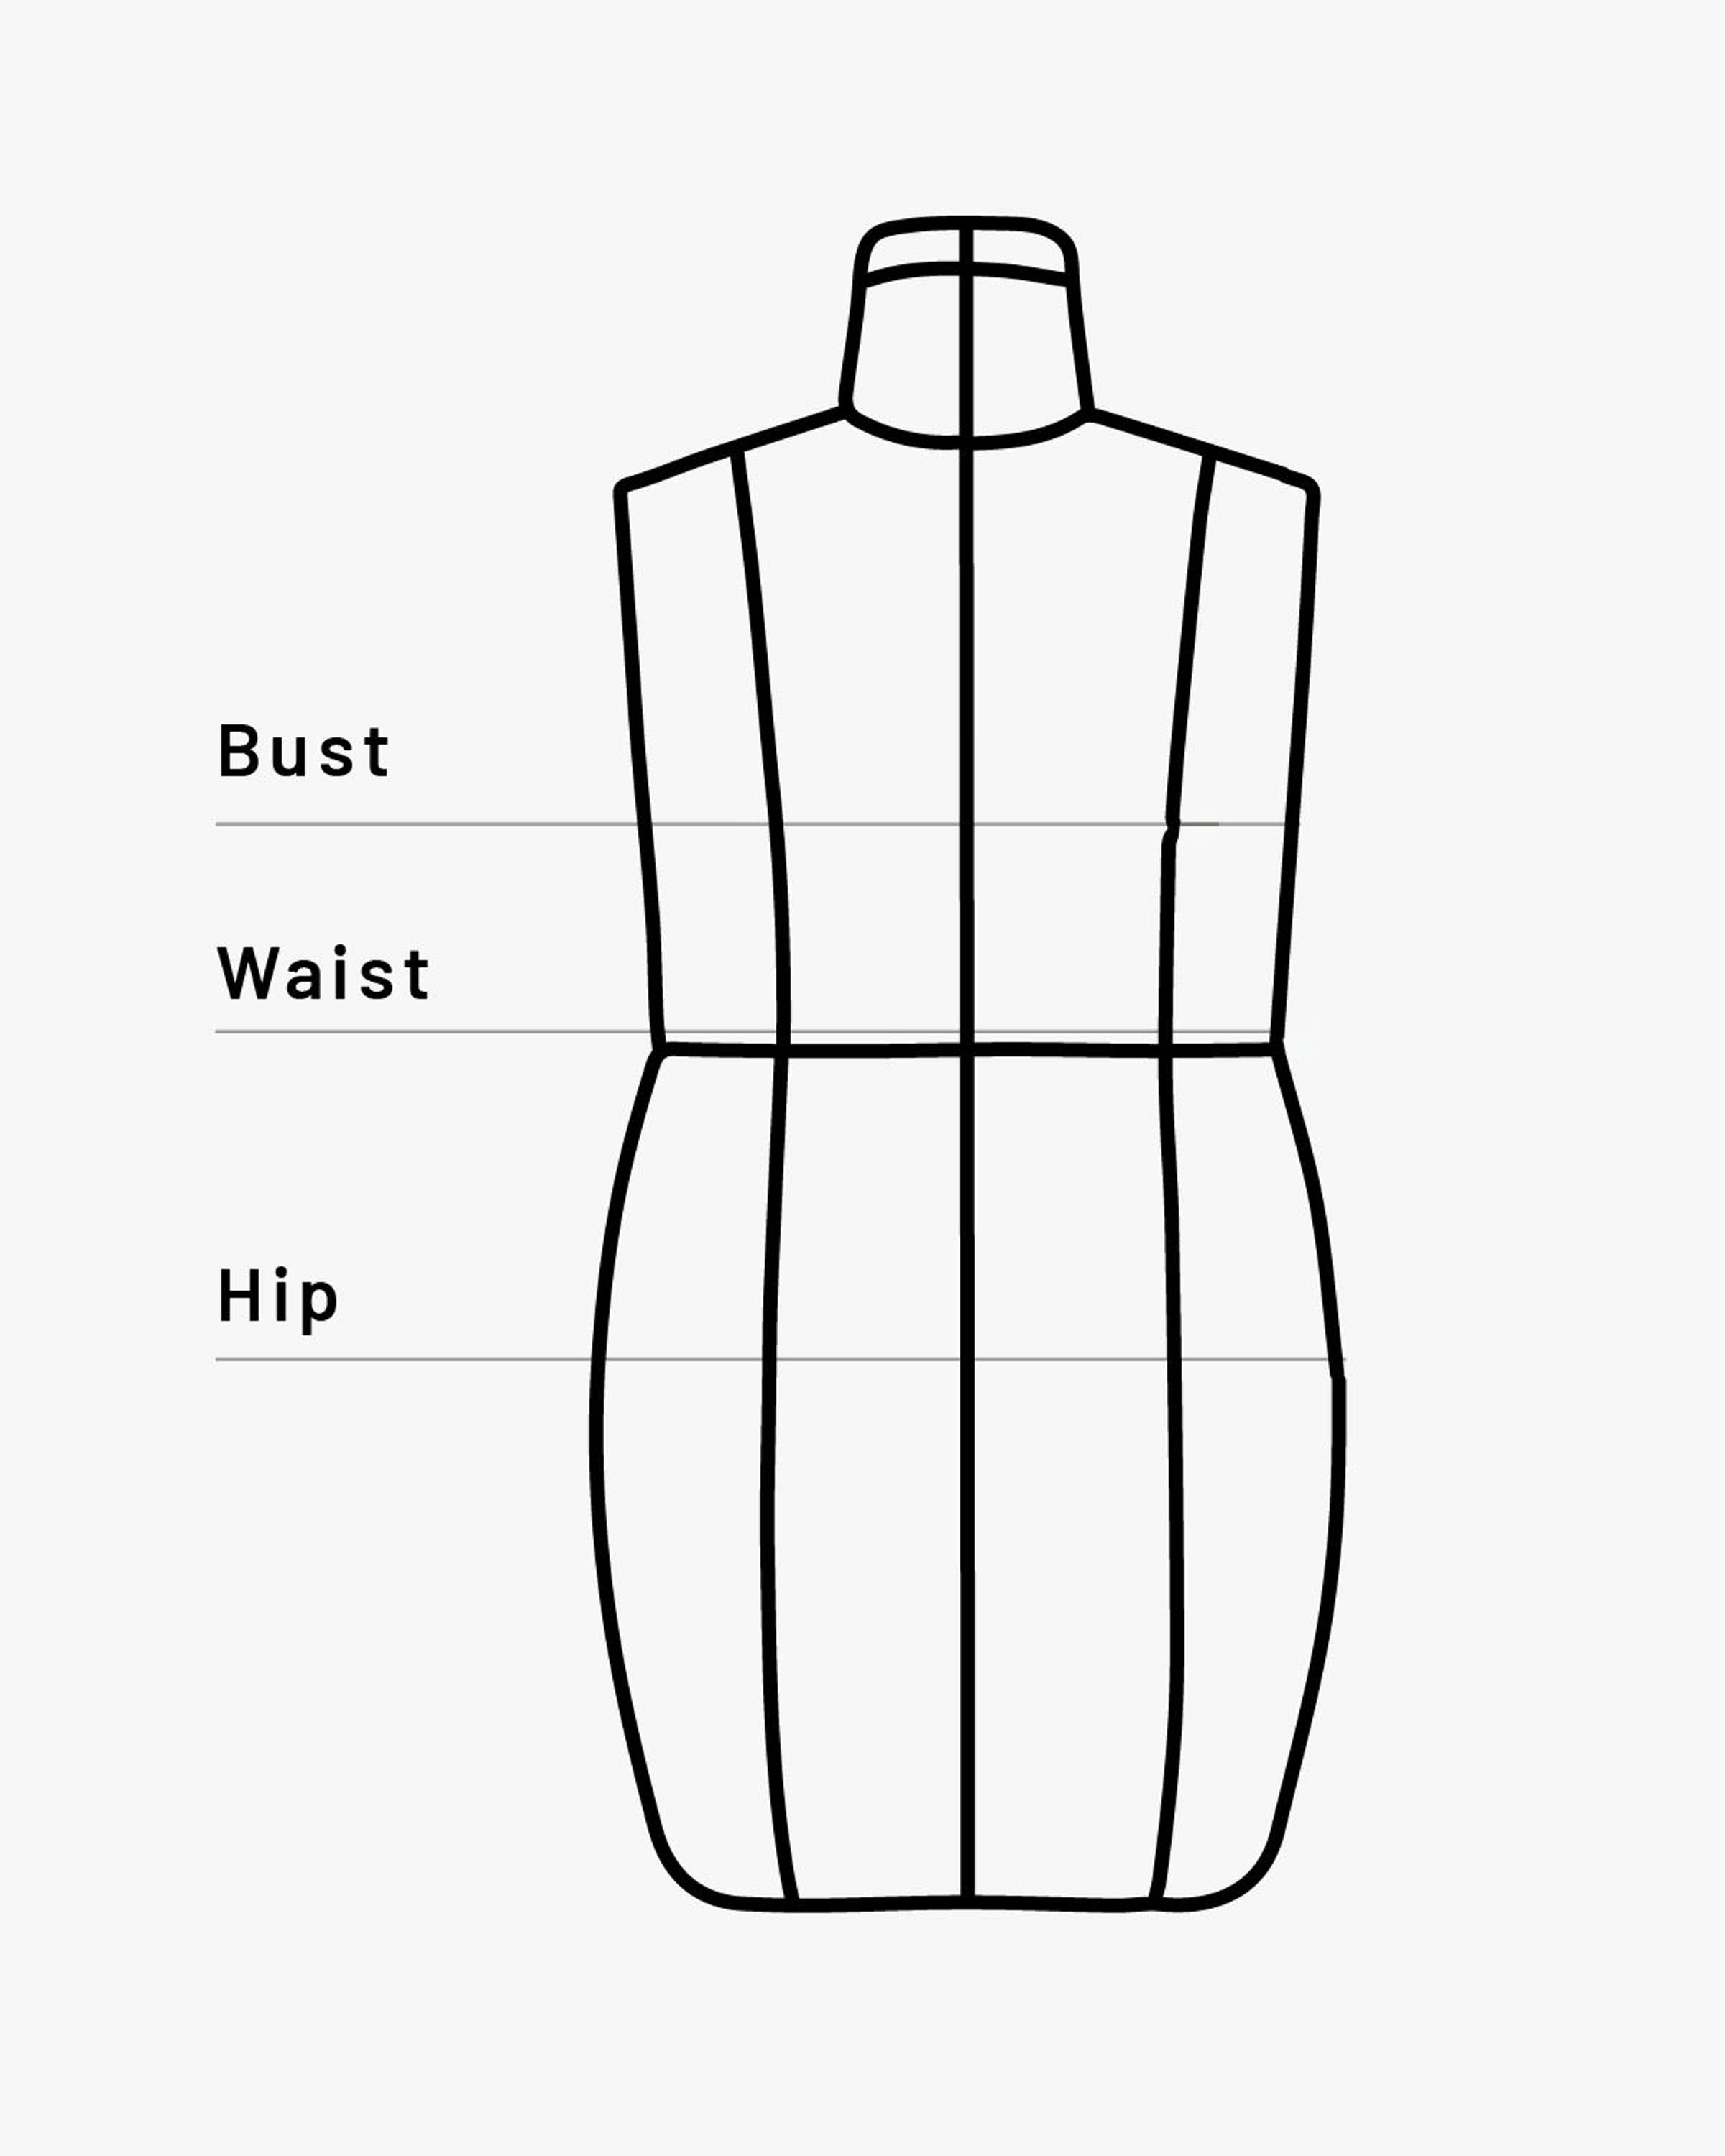 Illustration of a dress form with sizing areas highlighted